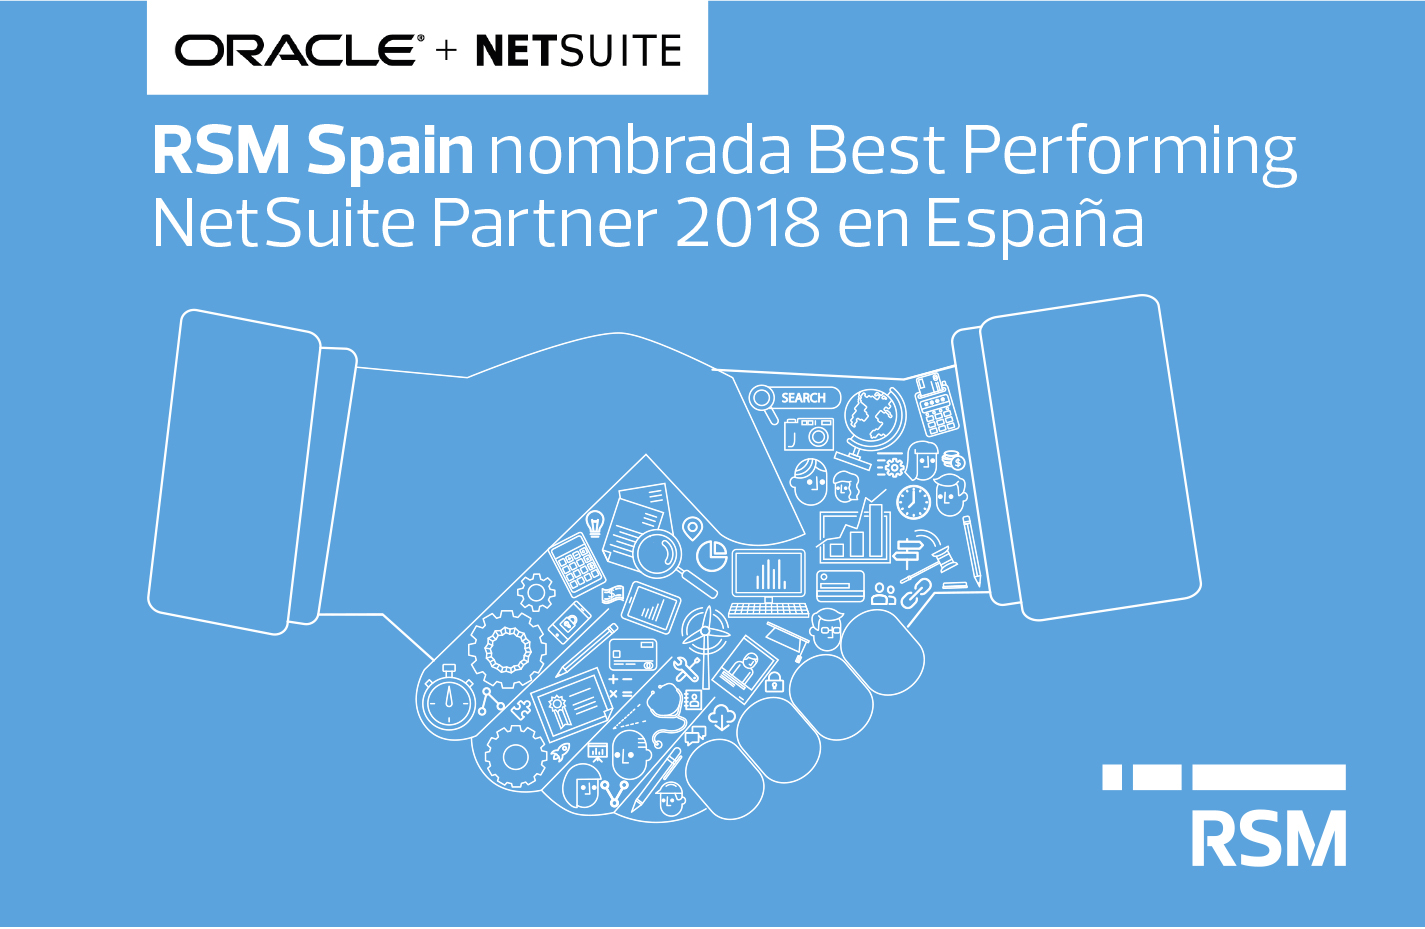 Oracle NetSuite reconoce a RSM Spain como Best Performing NetSuite Partner 2018 en España